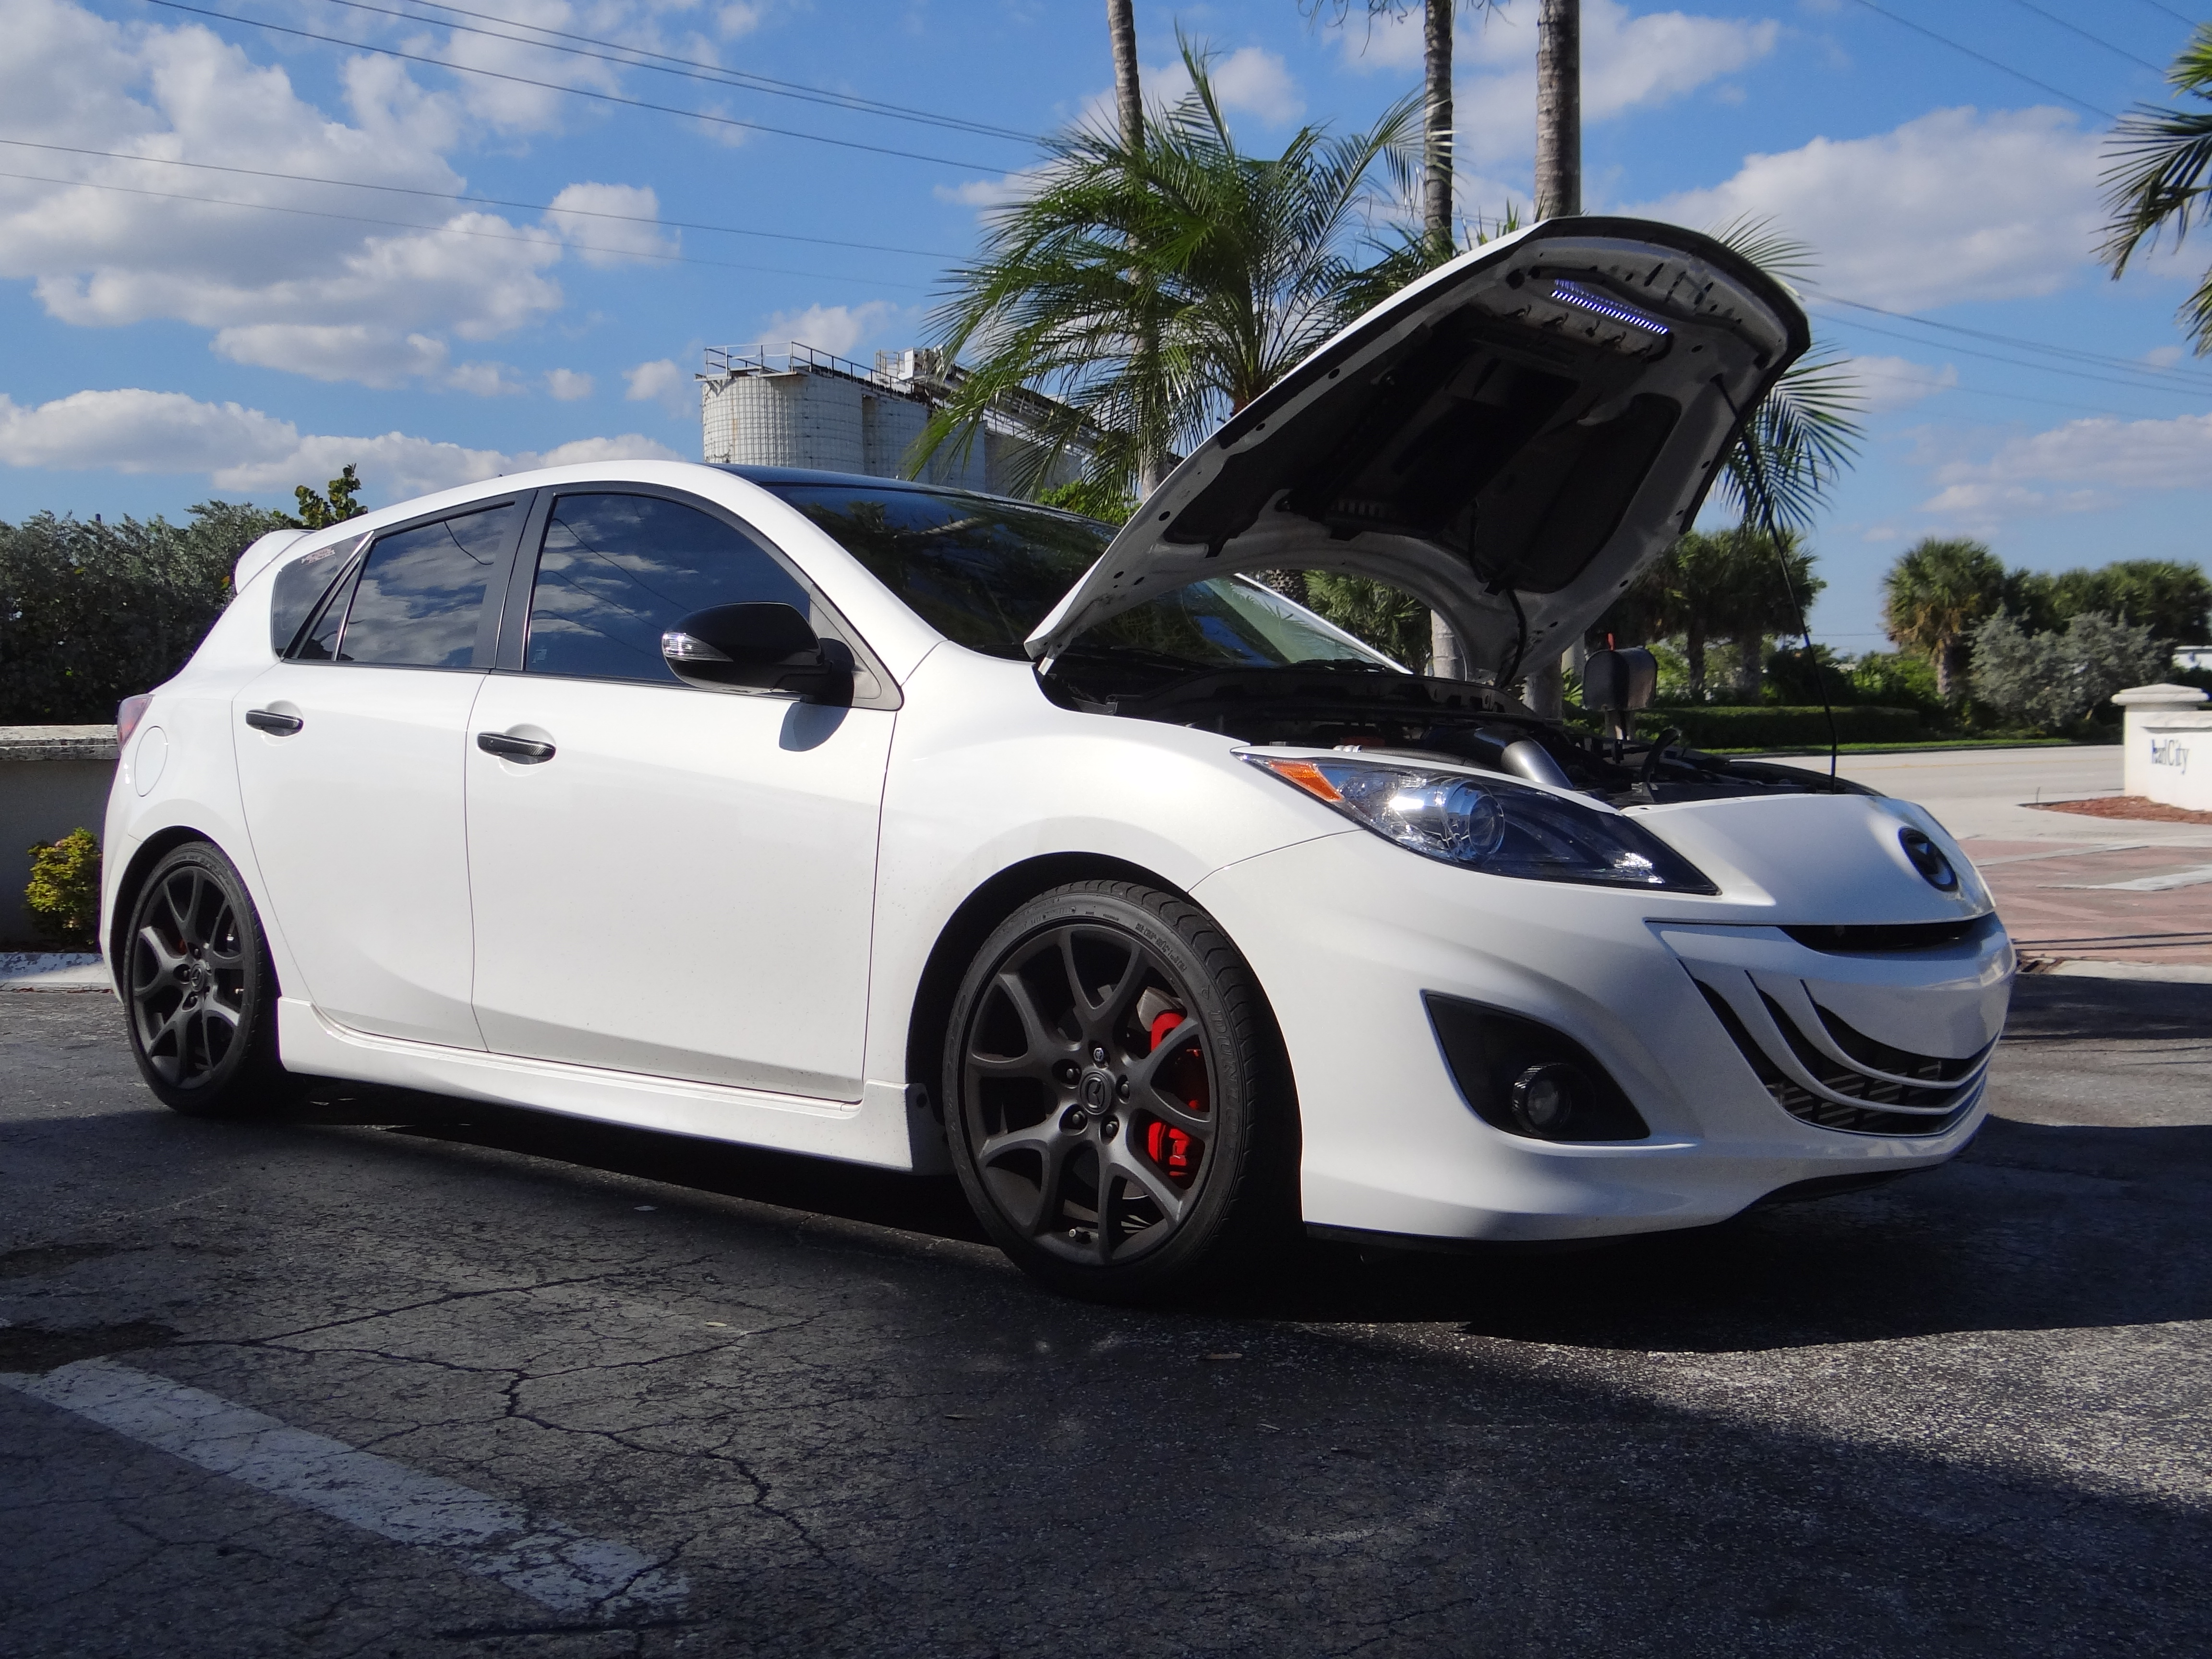 velocity factor 2012 mazdaspeed3 stage 3 upgrade. Black Bedroom Furniture Sets. Home Design Ideas